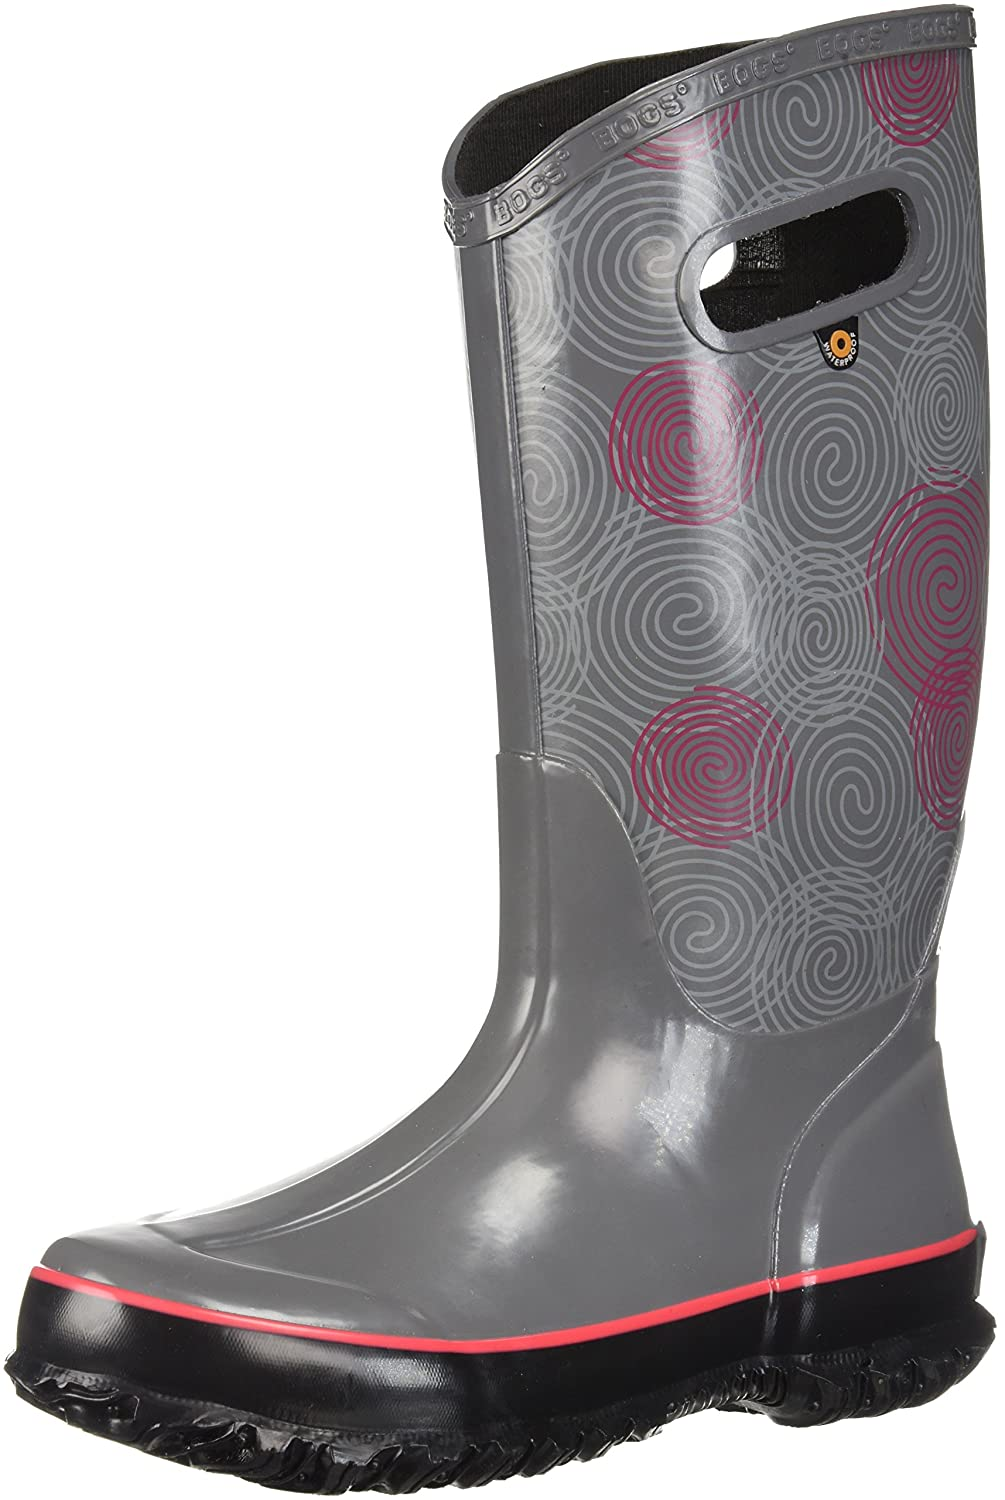 Bogs Women's Berkley Solid Rain Boot B073PK64ZW 7 B(M) US|Gray Multi